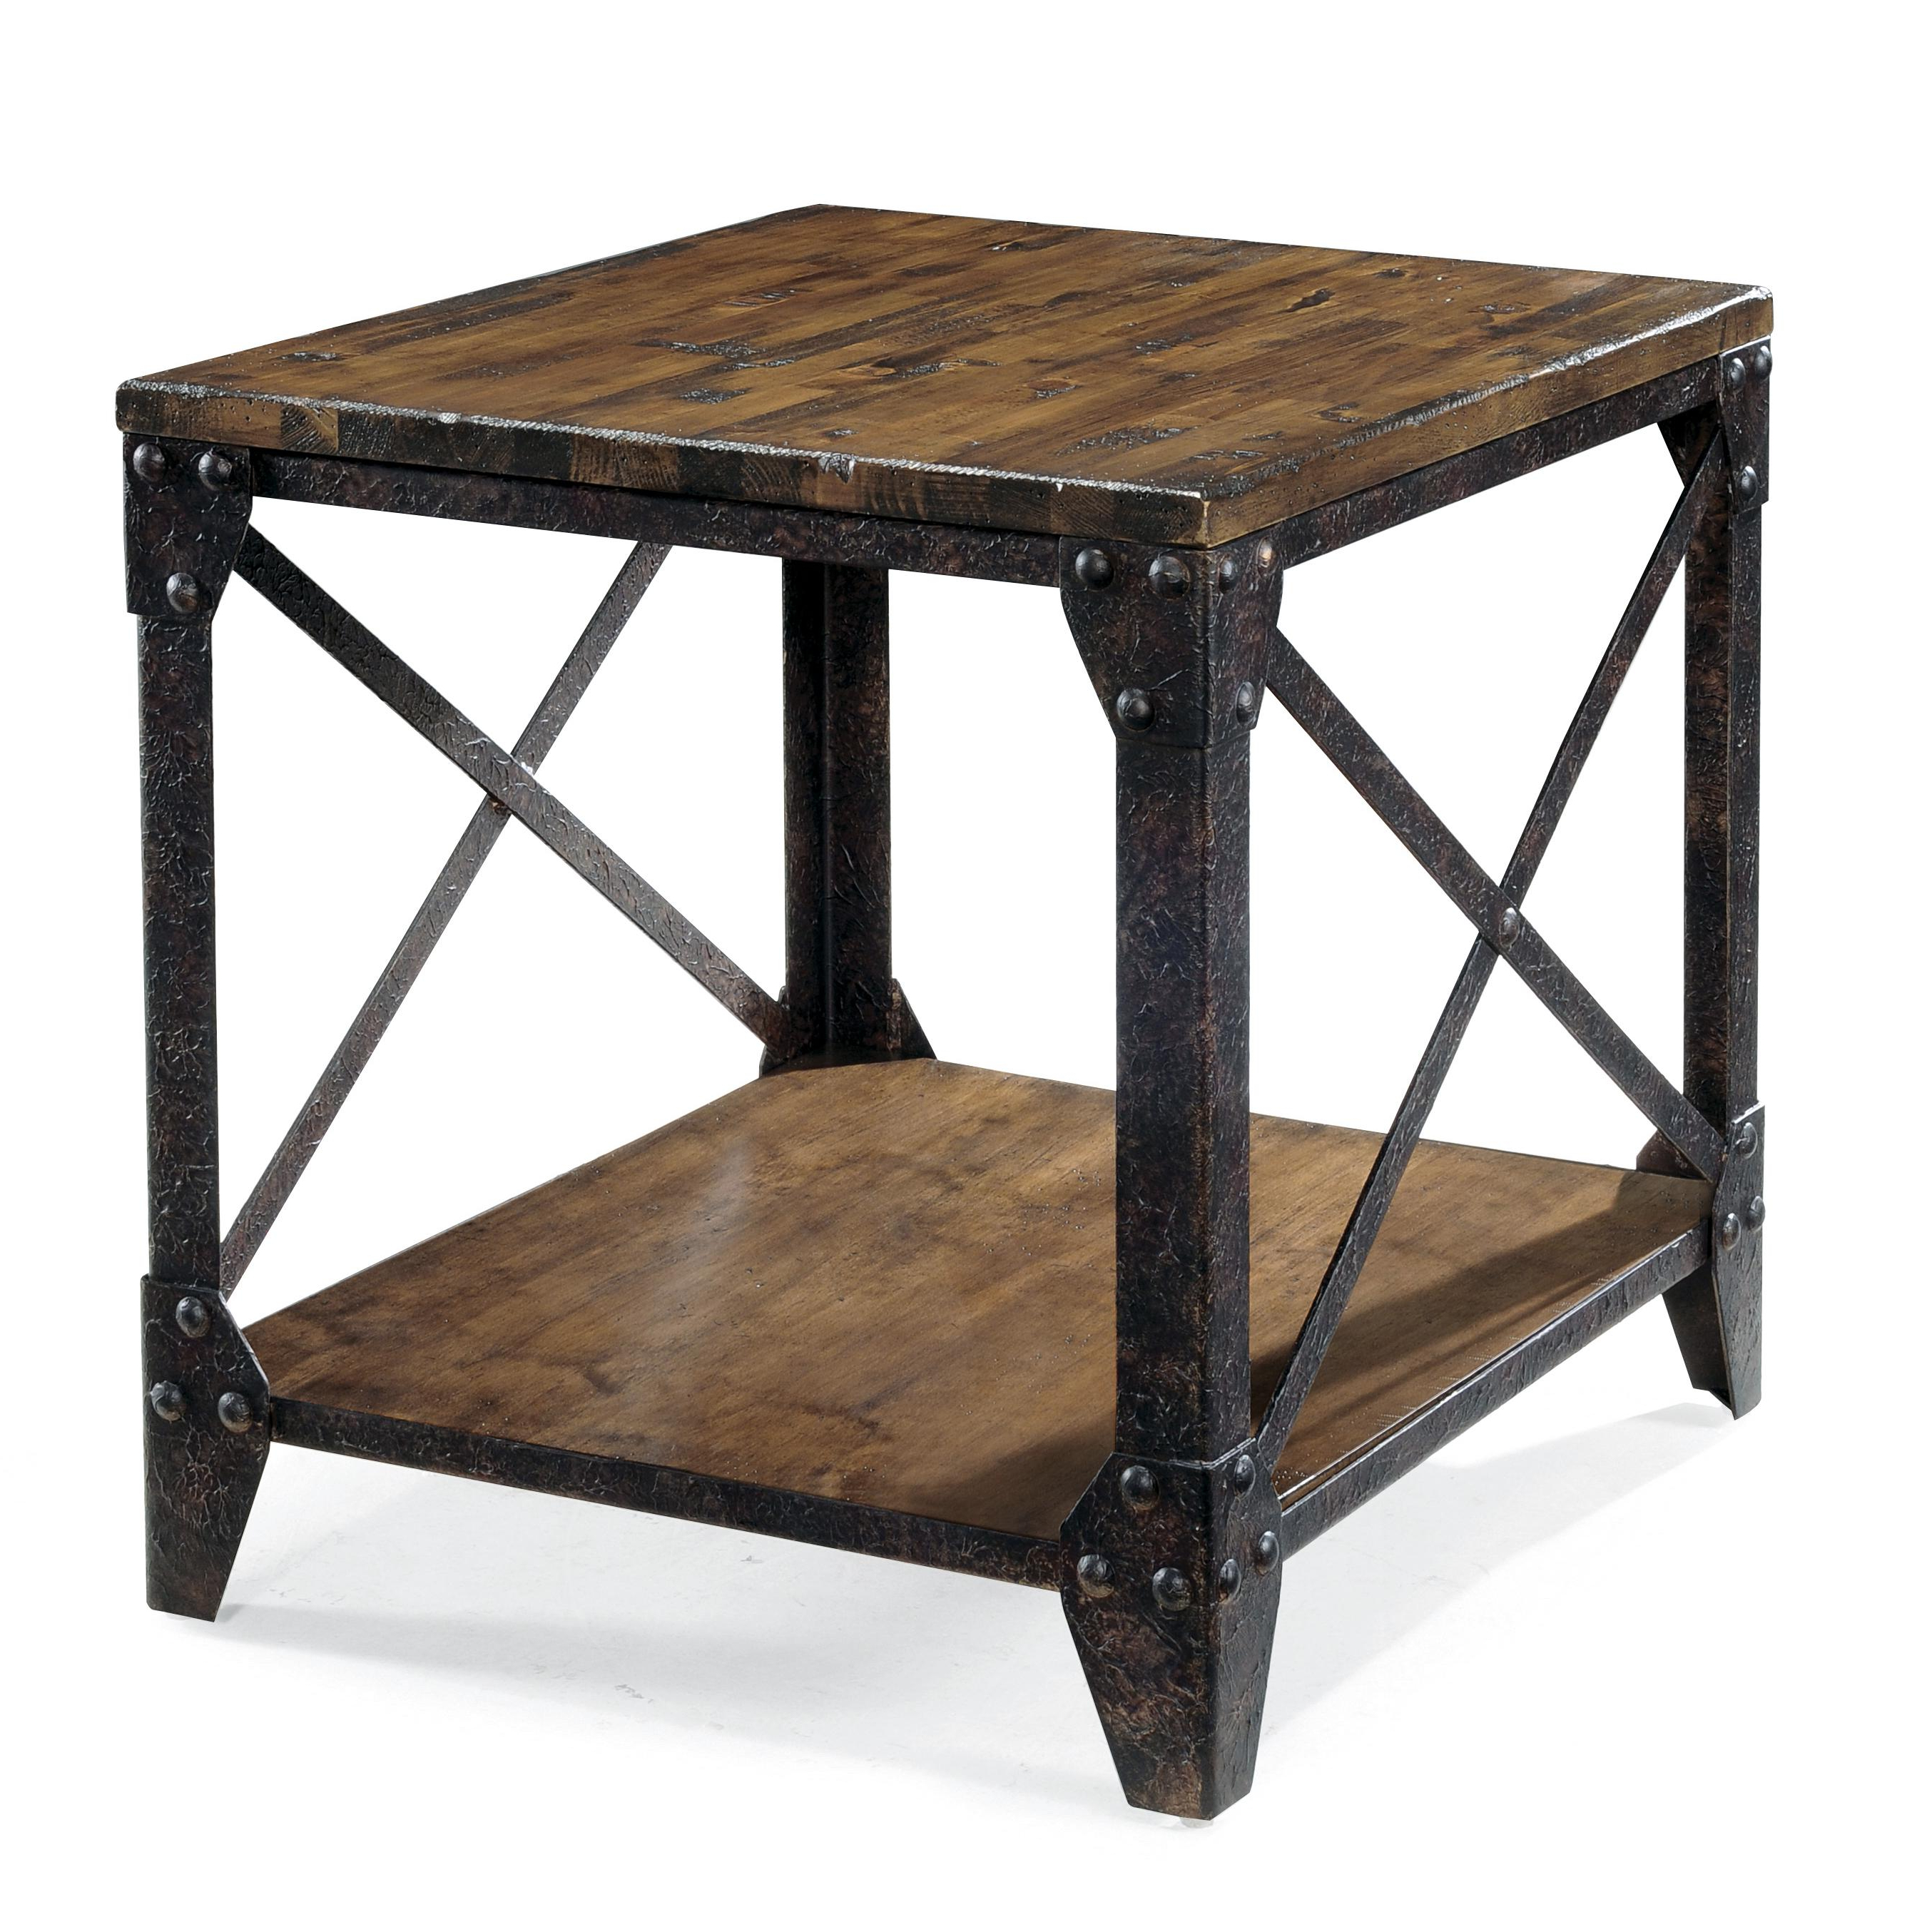 Fashionable Burnham Reclaimed Wood And Iron Round Coffee Tables Intended For Iron And Wood Furniture Iron And Wood Bedroom Furniture (View 19 of 20)